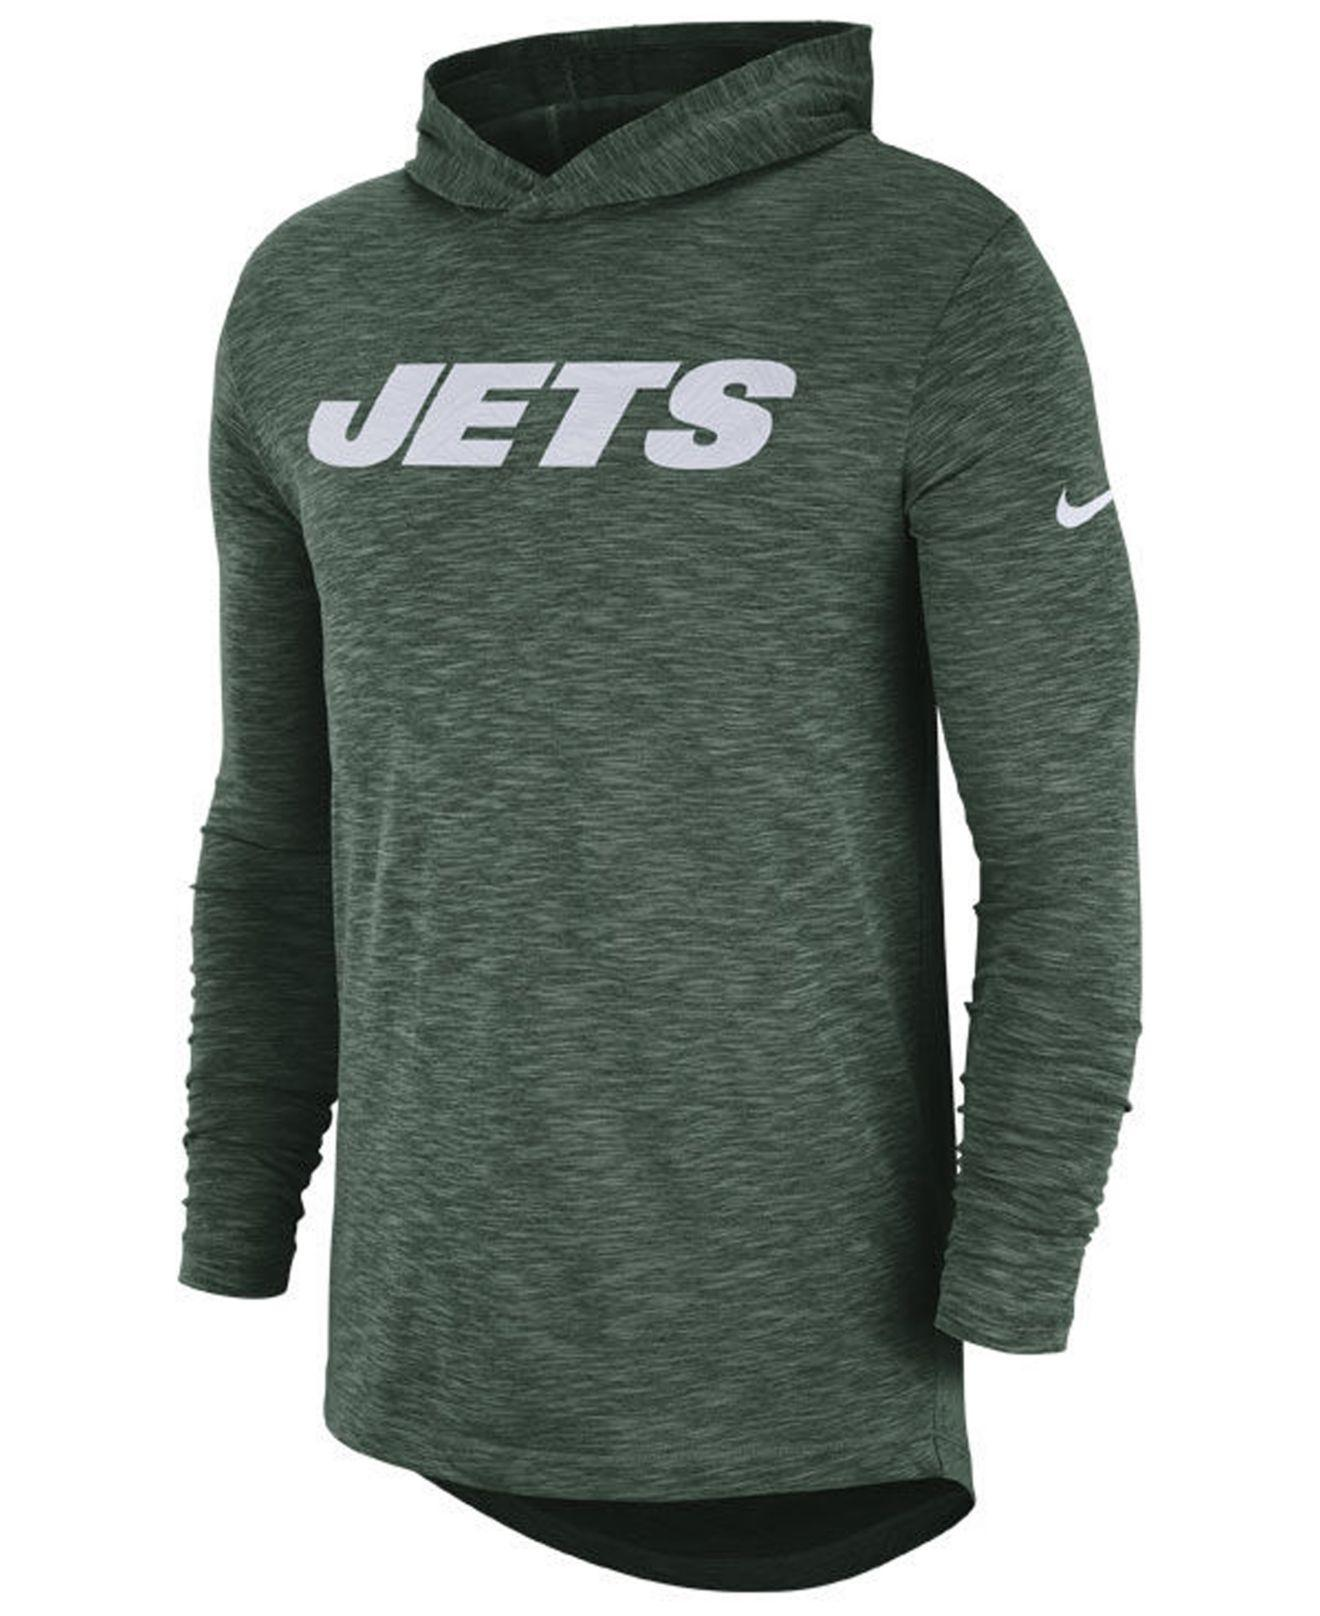 b955749e9 Lyst - Nike New York Jets Dri-fit Cotton Slub On-field Hooded T ...